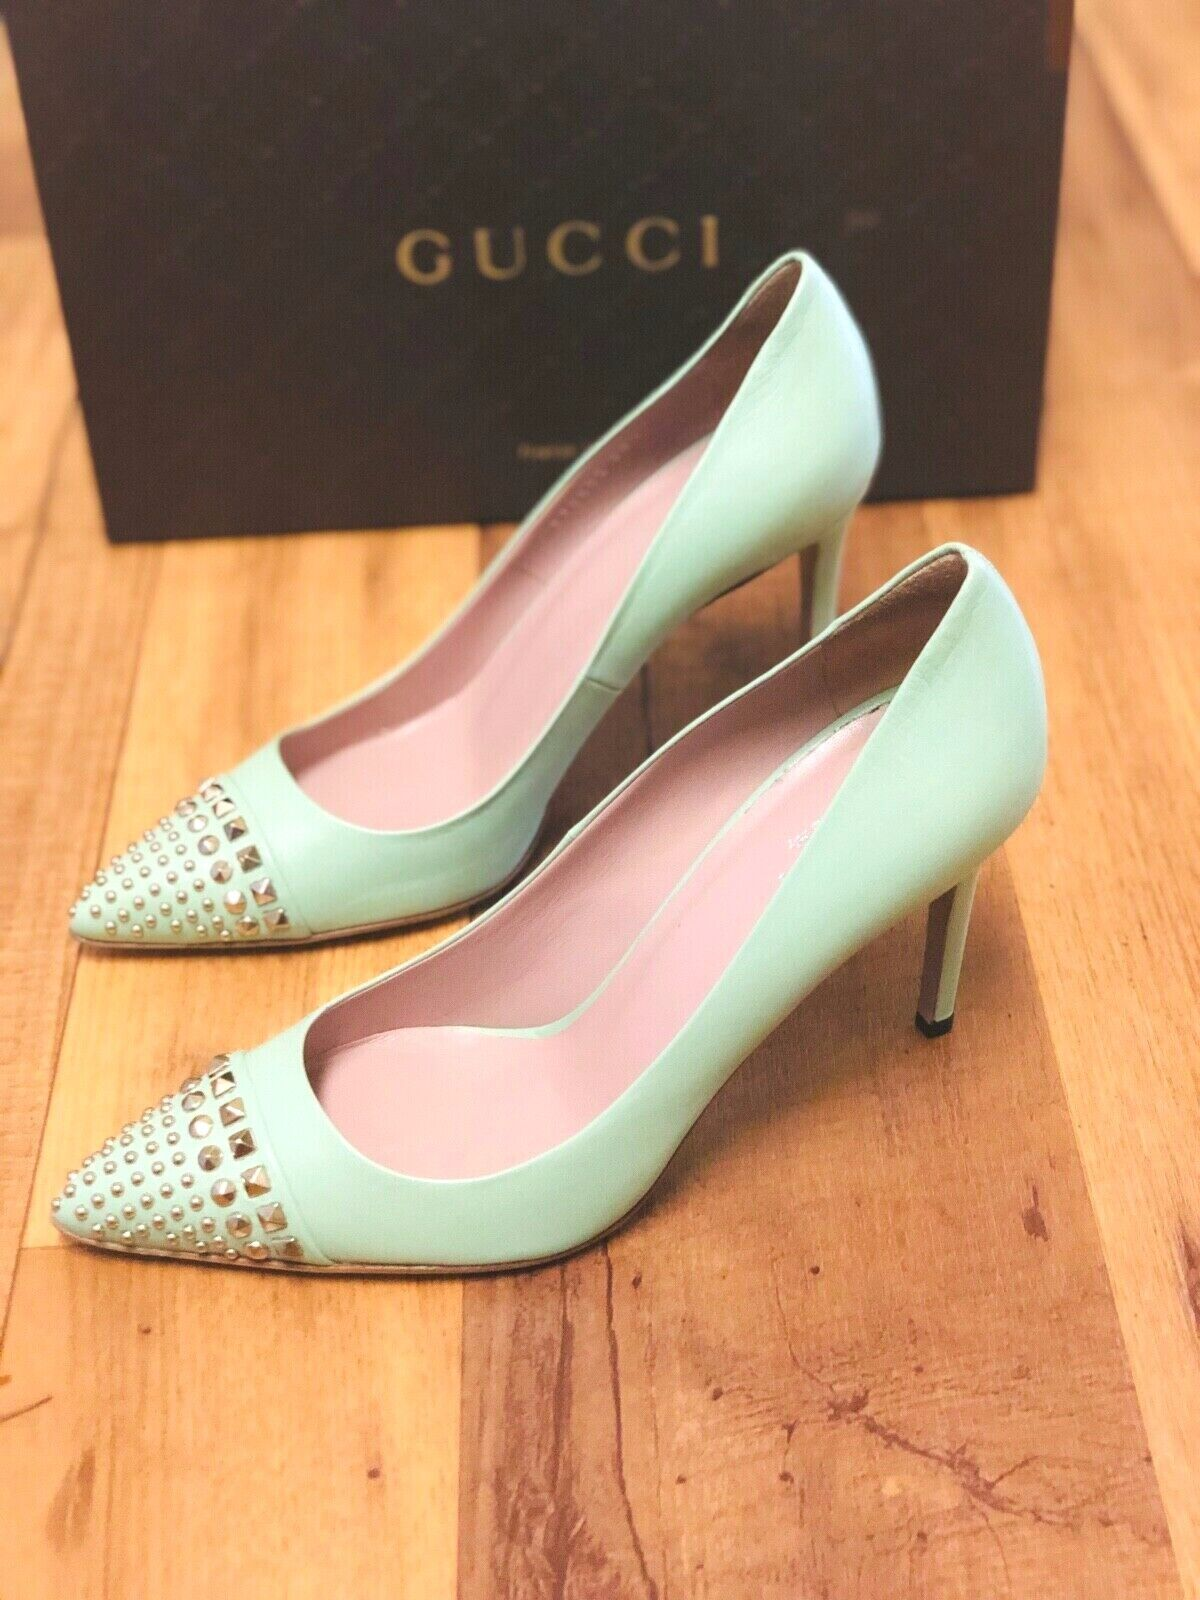 GUCCI SHOES STUDDED TEAL LEATHER  METAL Silver STUDS PUMPS IT 38.5  8.5 $620